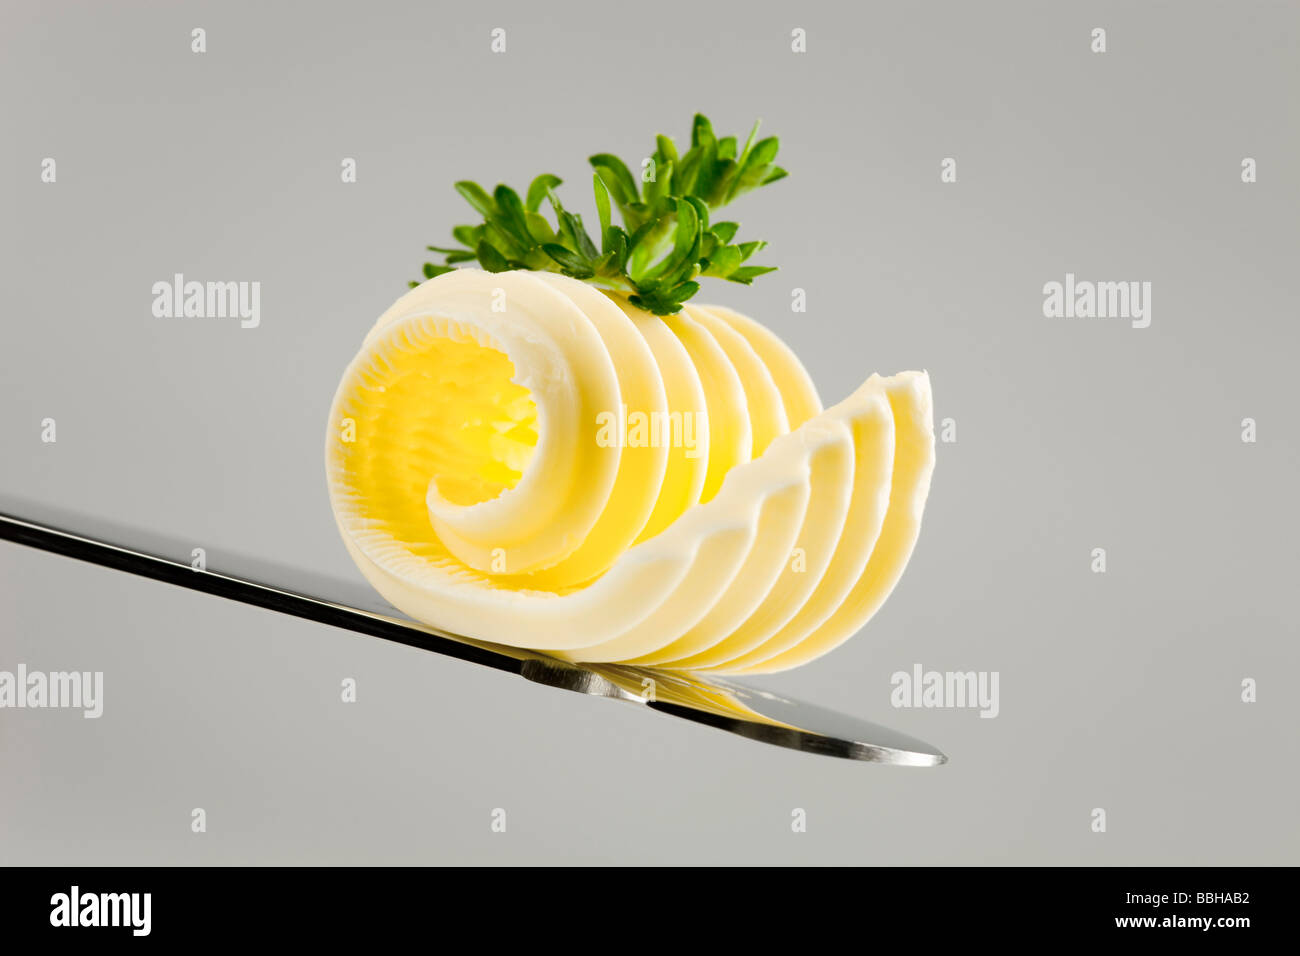 Butter curl on a knife - Stock Image